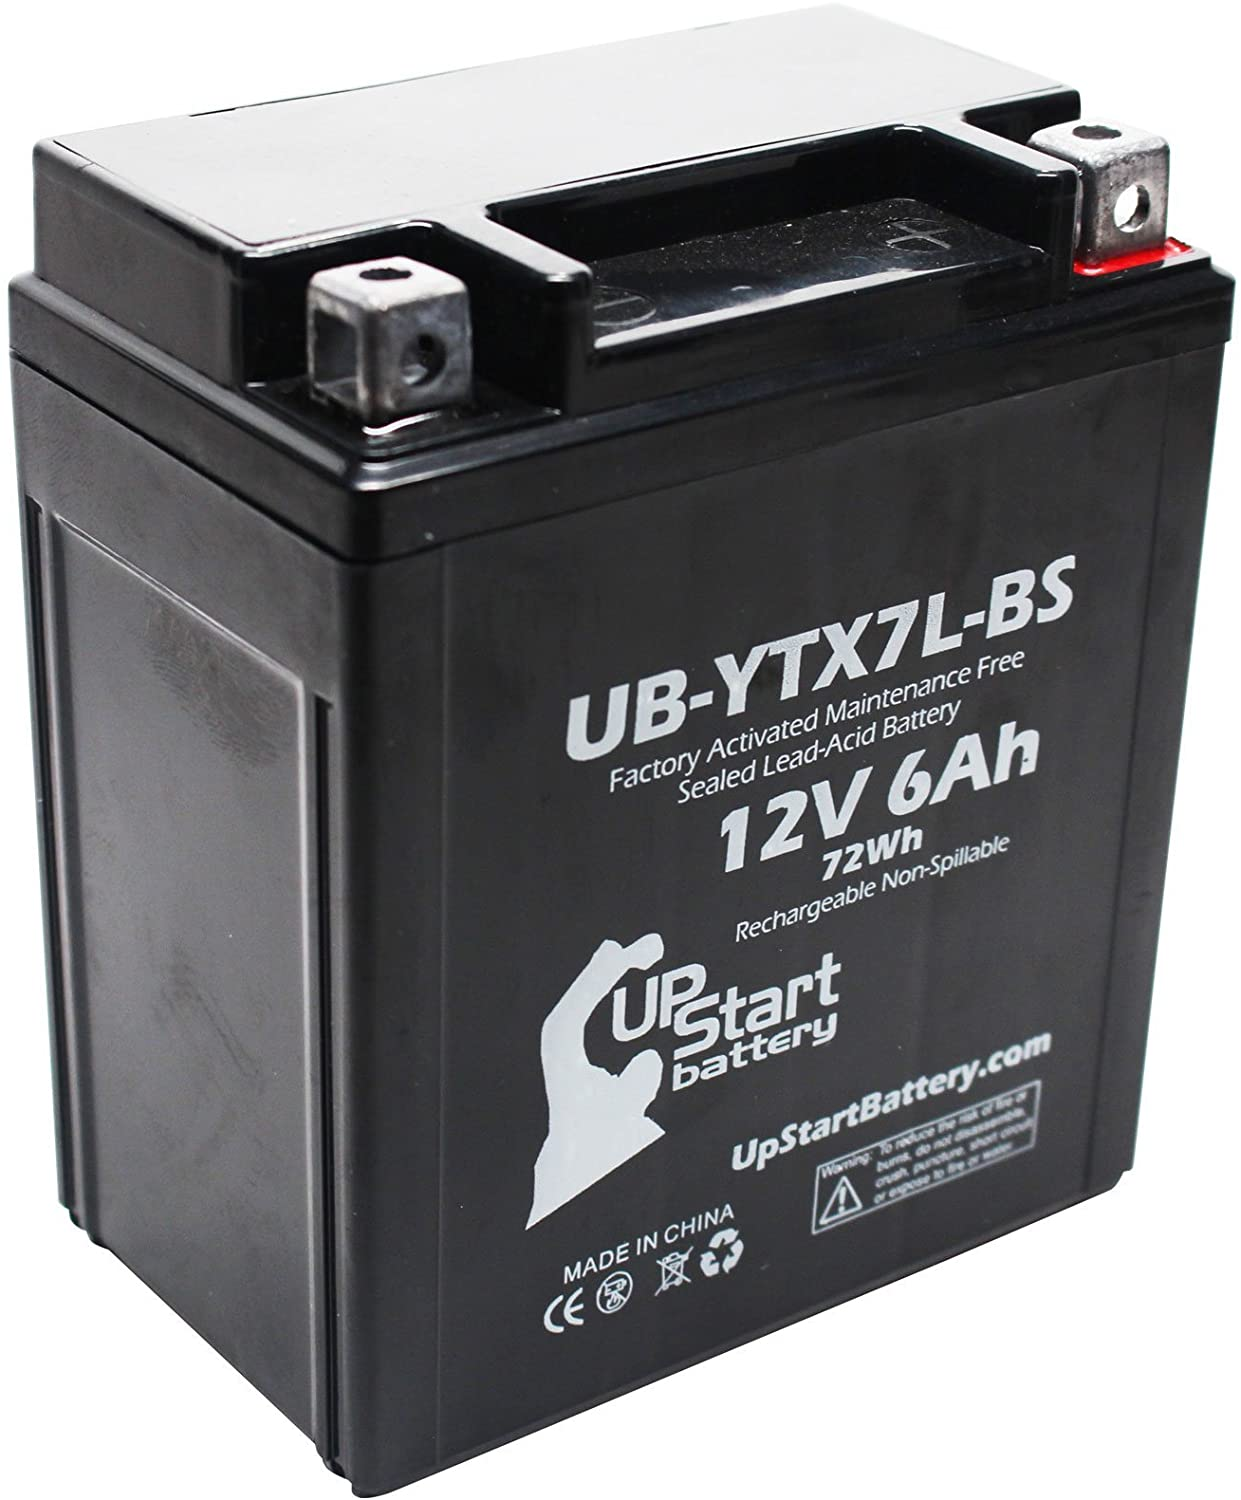 Replacement for 2003 Kawasaki EX250 Ninja 250CC Factory Activated, Maintenance Free, Motorcycle Battery - 12V, 6Ah, UB-YTX7L-BS